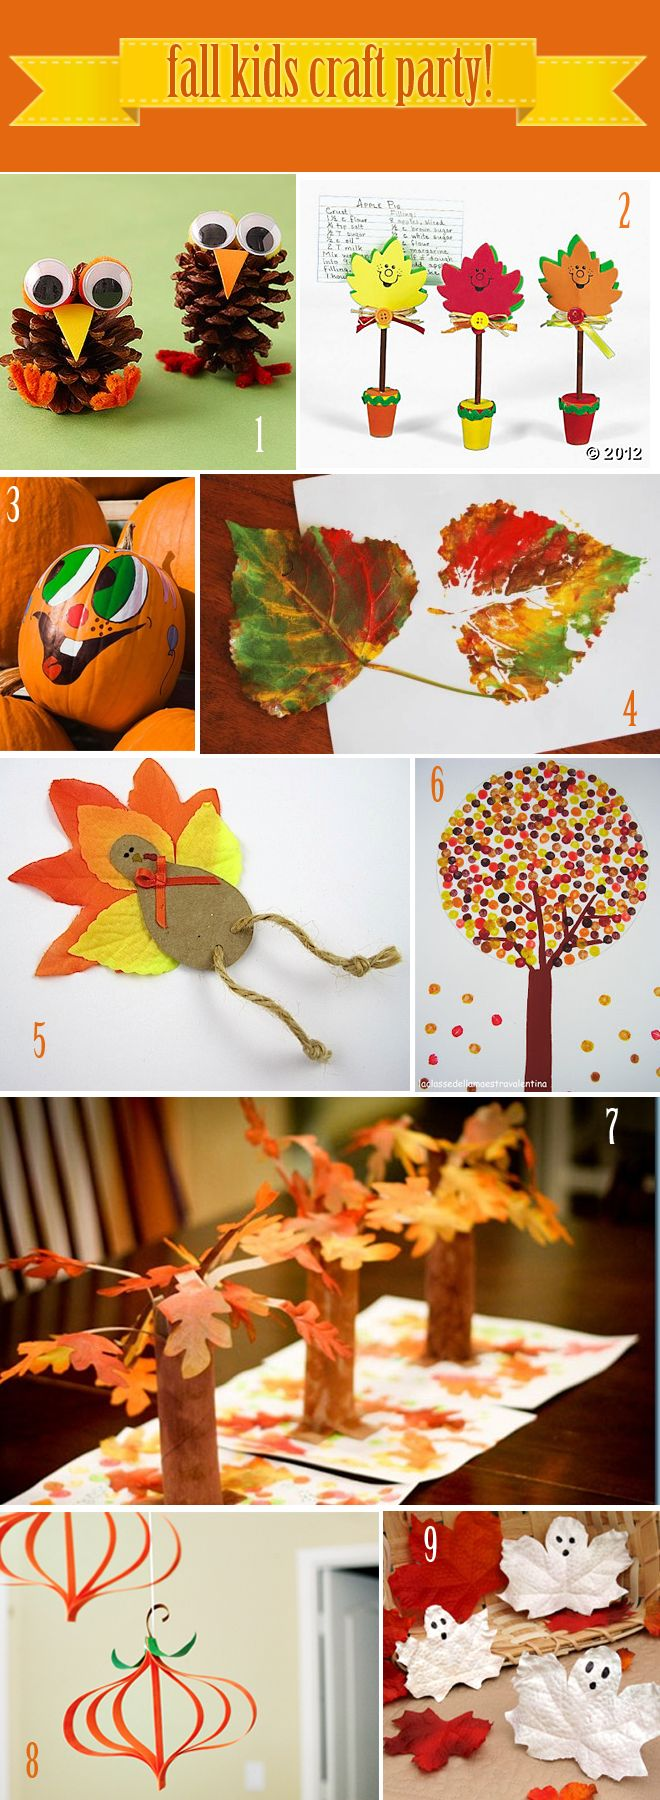 9 Cute Fall Craft Ideas for Kids